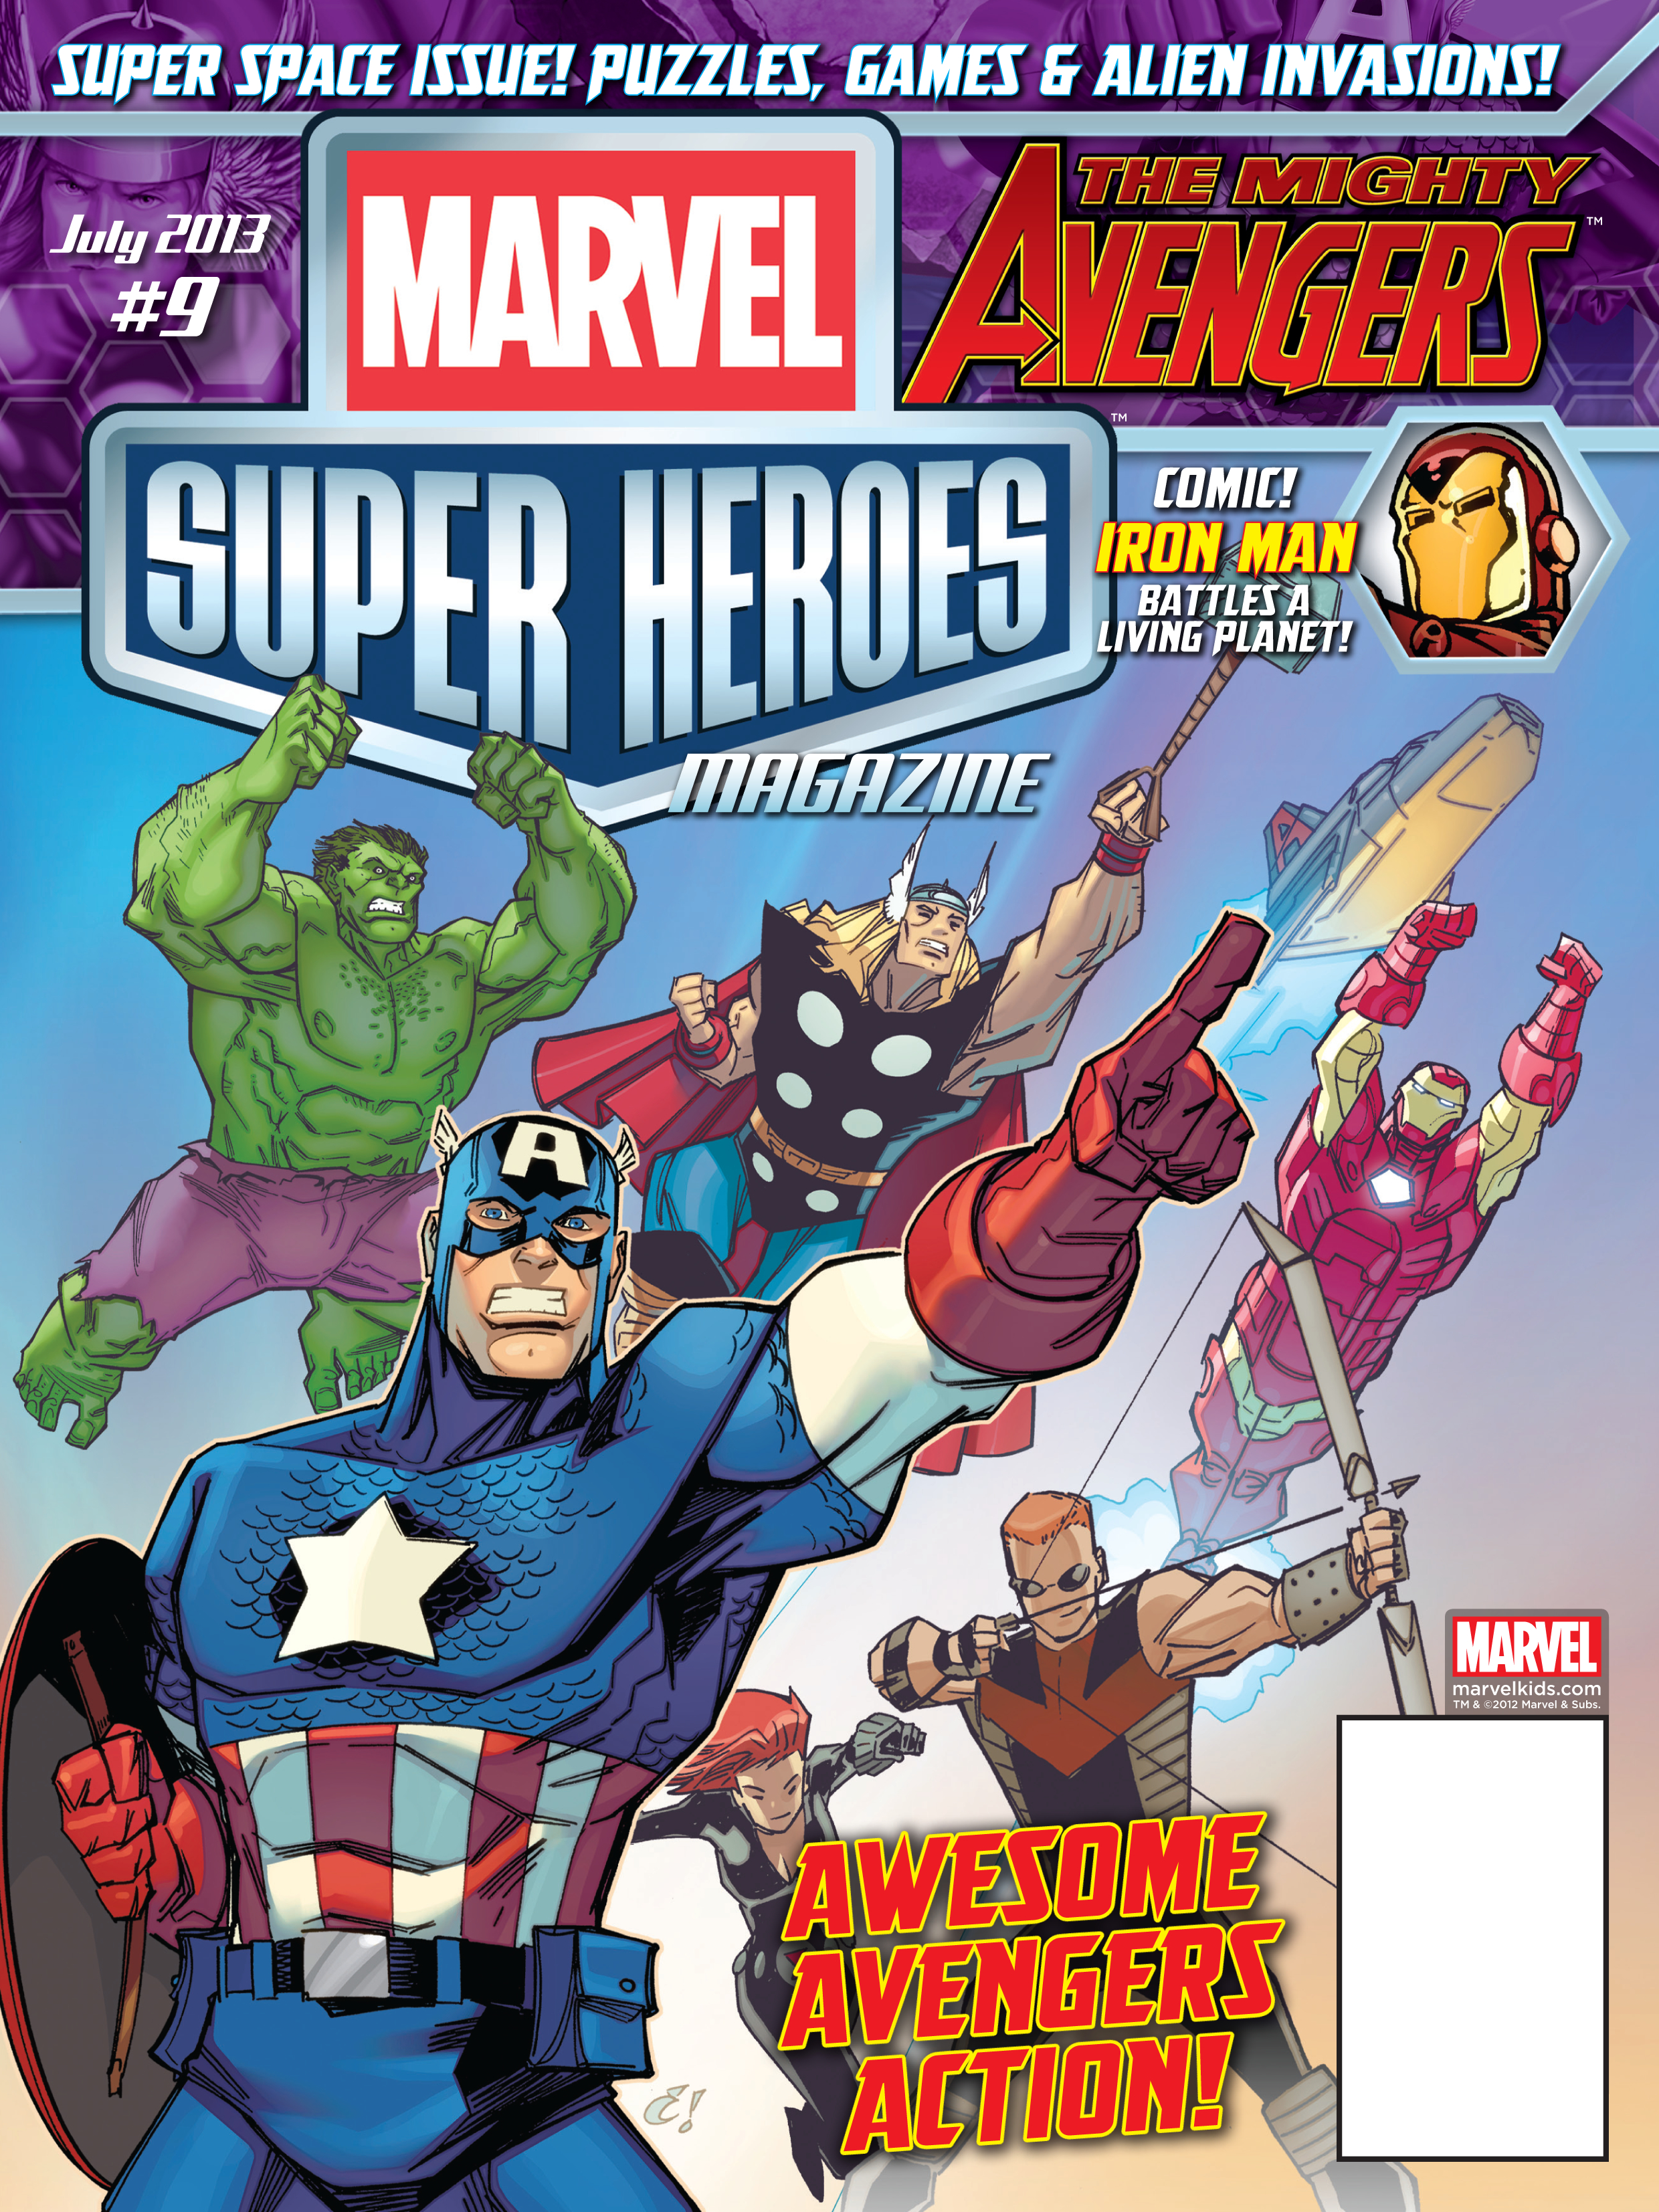 MARVEL SUPER HEROES #9